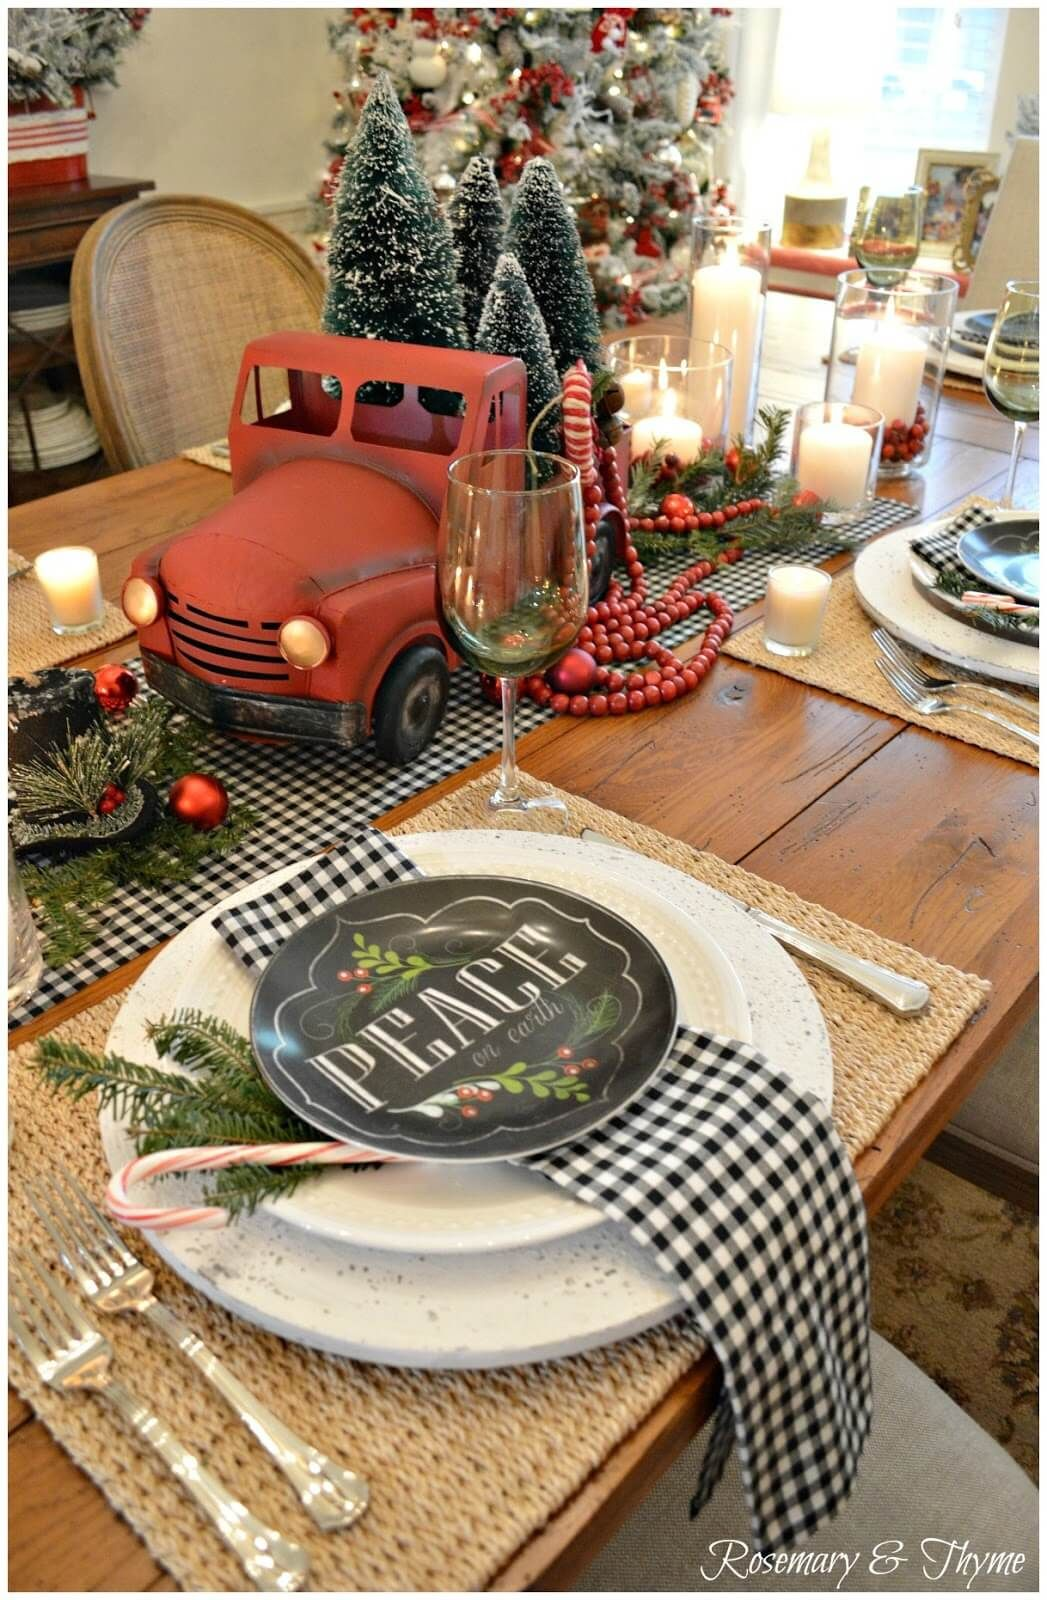 400 Christmas Kitchens Ideas In 2020 Christmas Kitchen Christmas Decorations Christmas